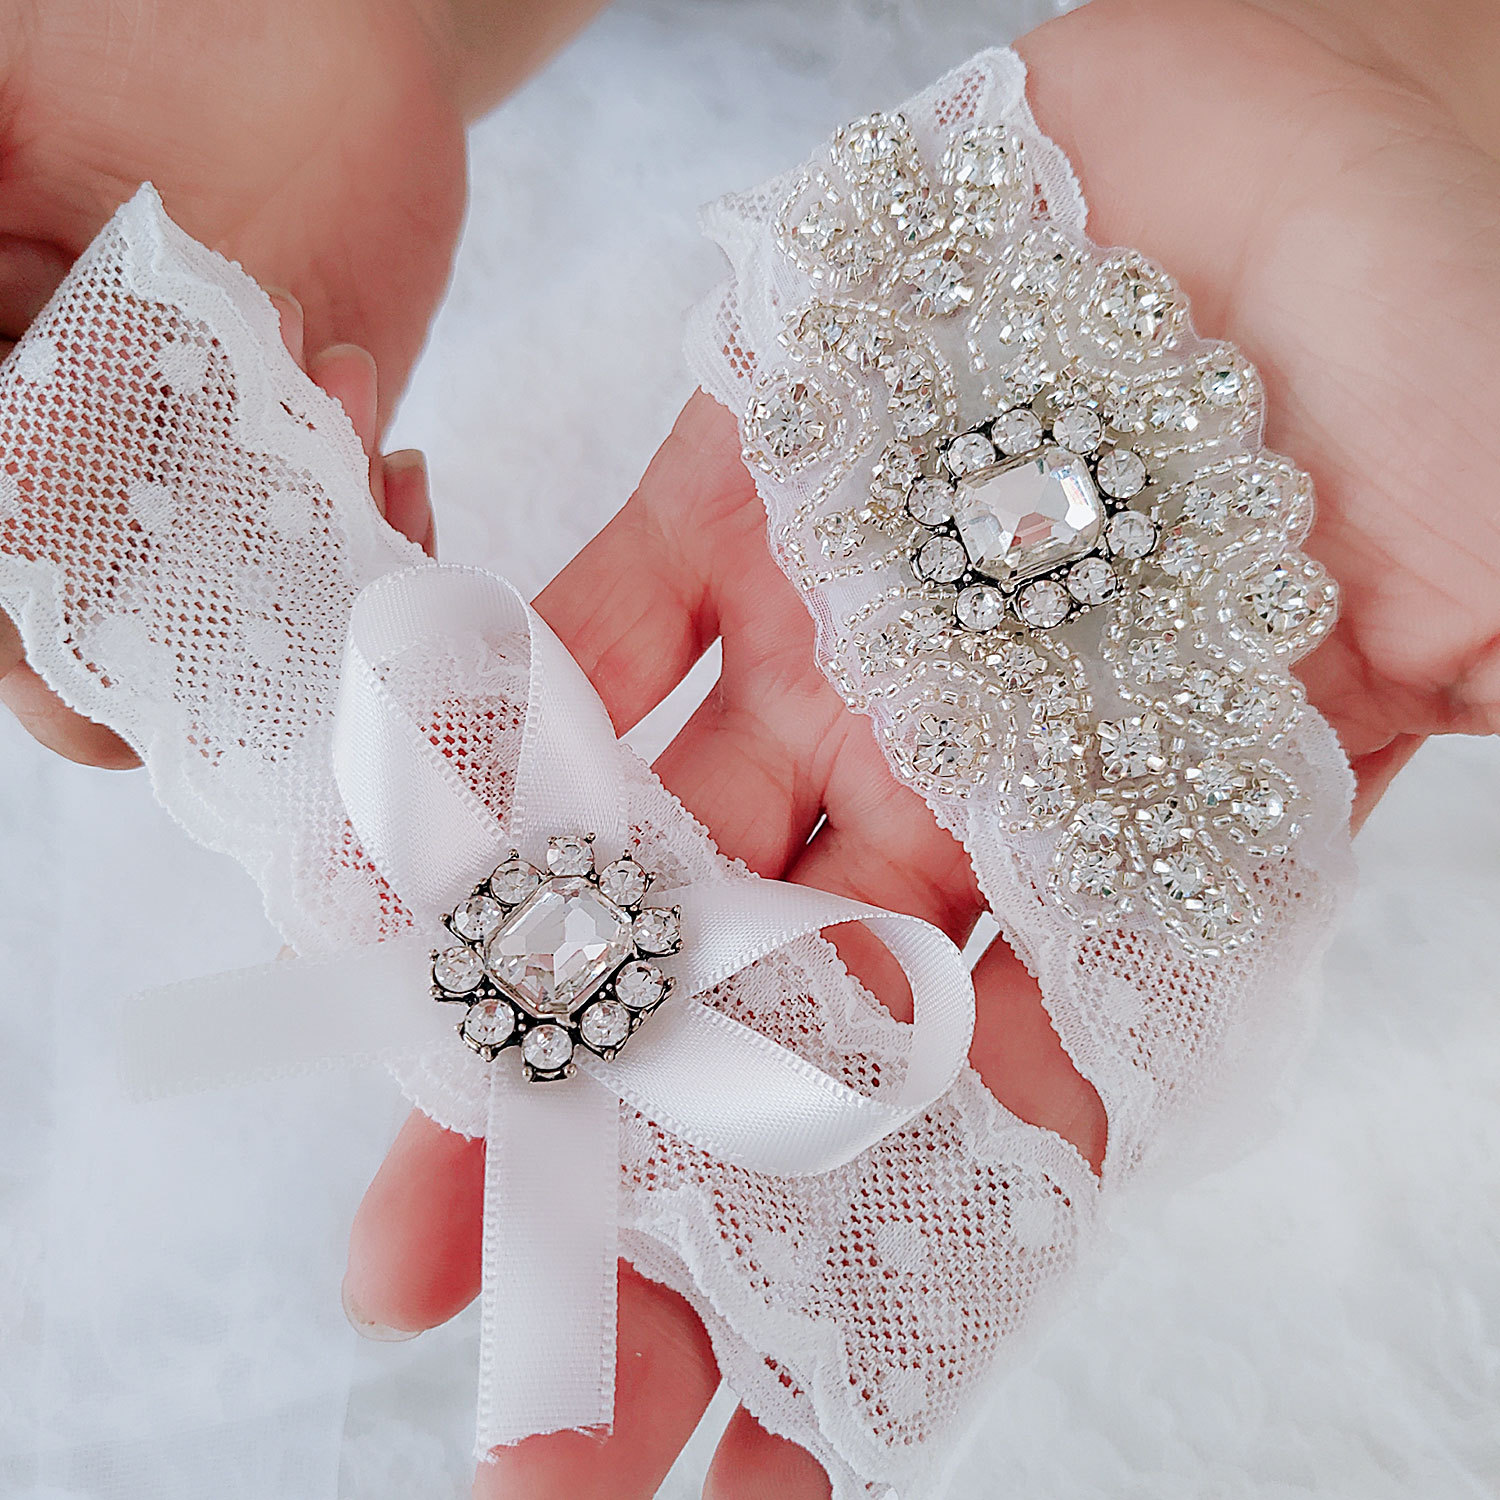 Kyunovia Crystal and Pearl Garter Bridal Garter Vintage Rhinestones bridal garter Lace Wedding Garter Set  D99